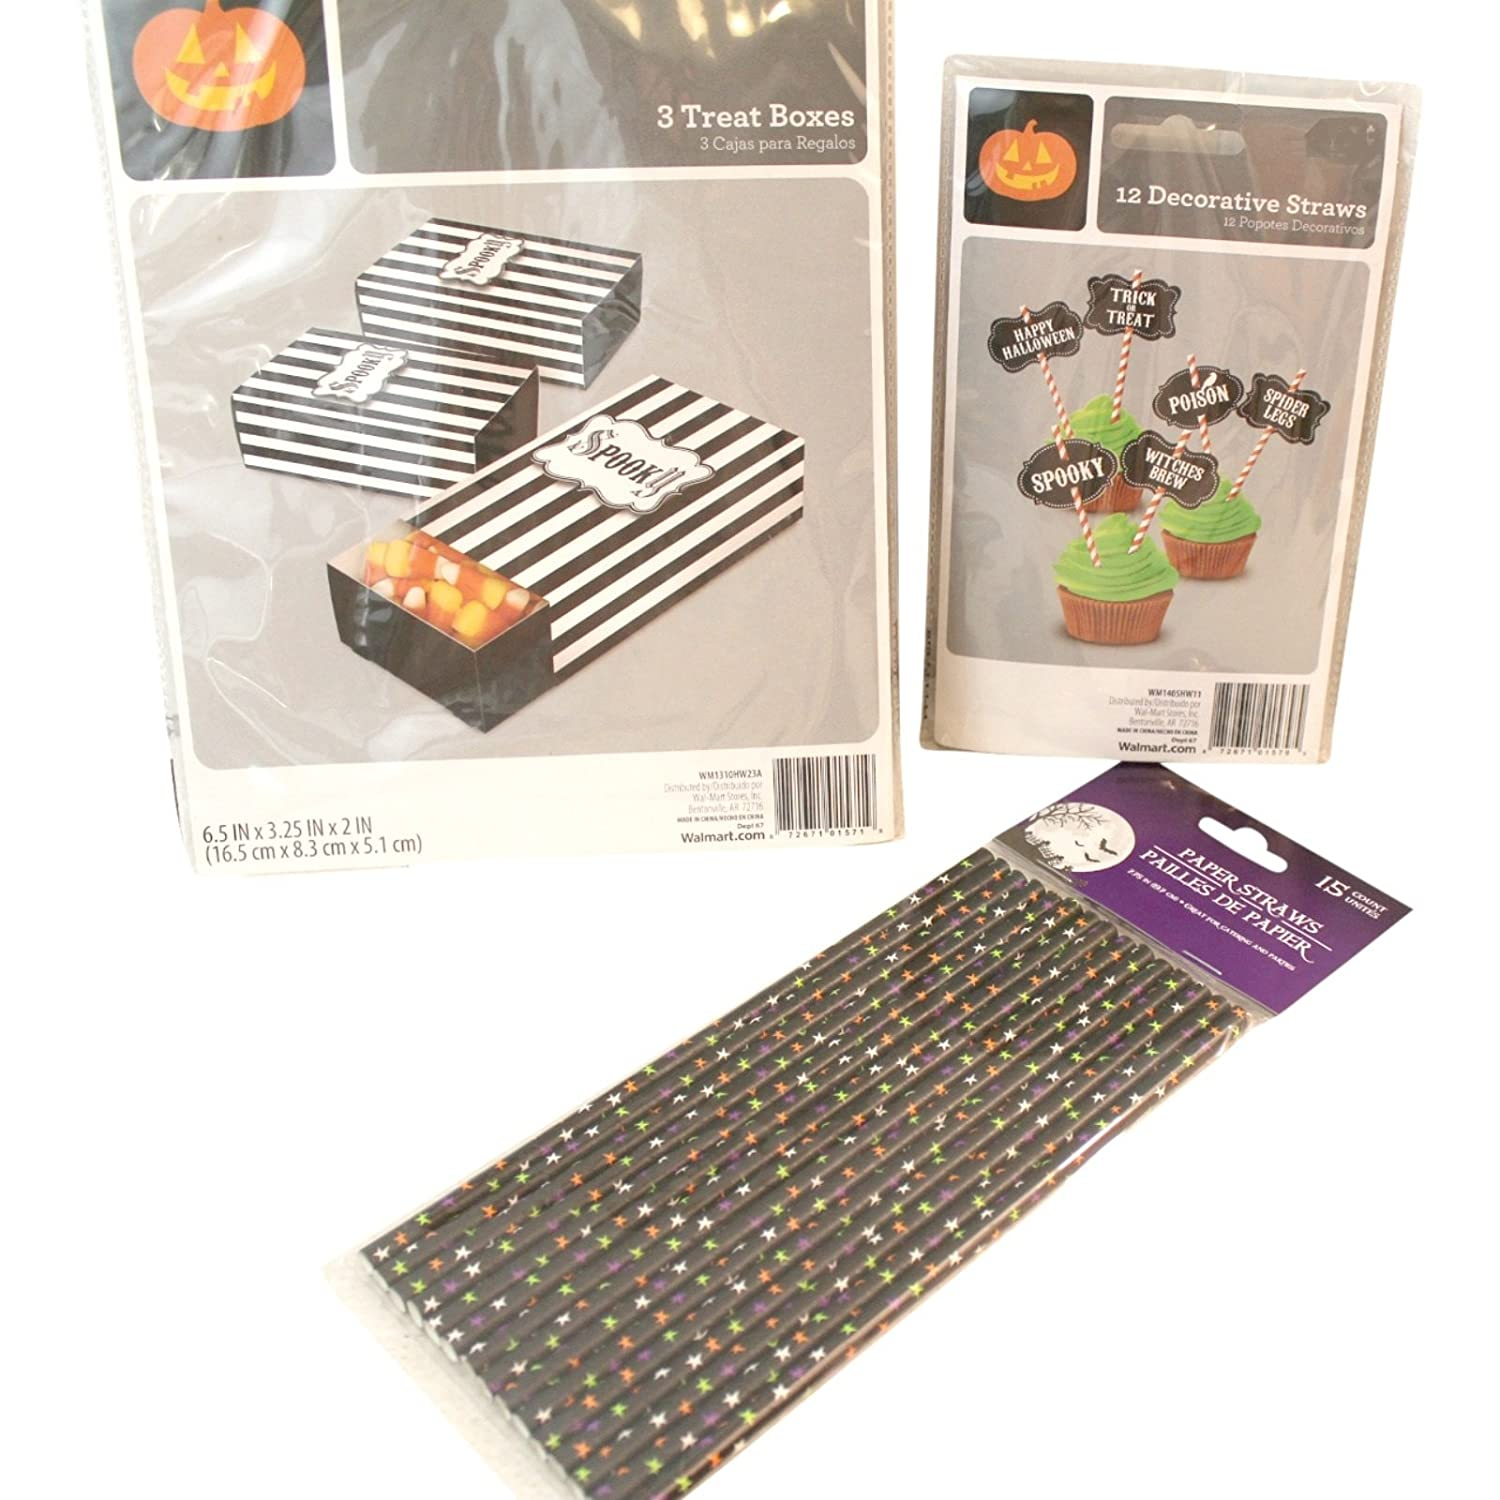 Amazon.com: Halloween Cupcake, Treat Boxes, and Paper Straws Decorating Bundle: 12 Cupcake Decorative Straws, 3 Treat Boxes, 15 Star Paper Straws: Home & ...